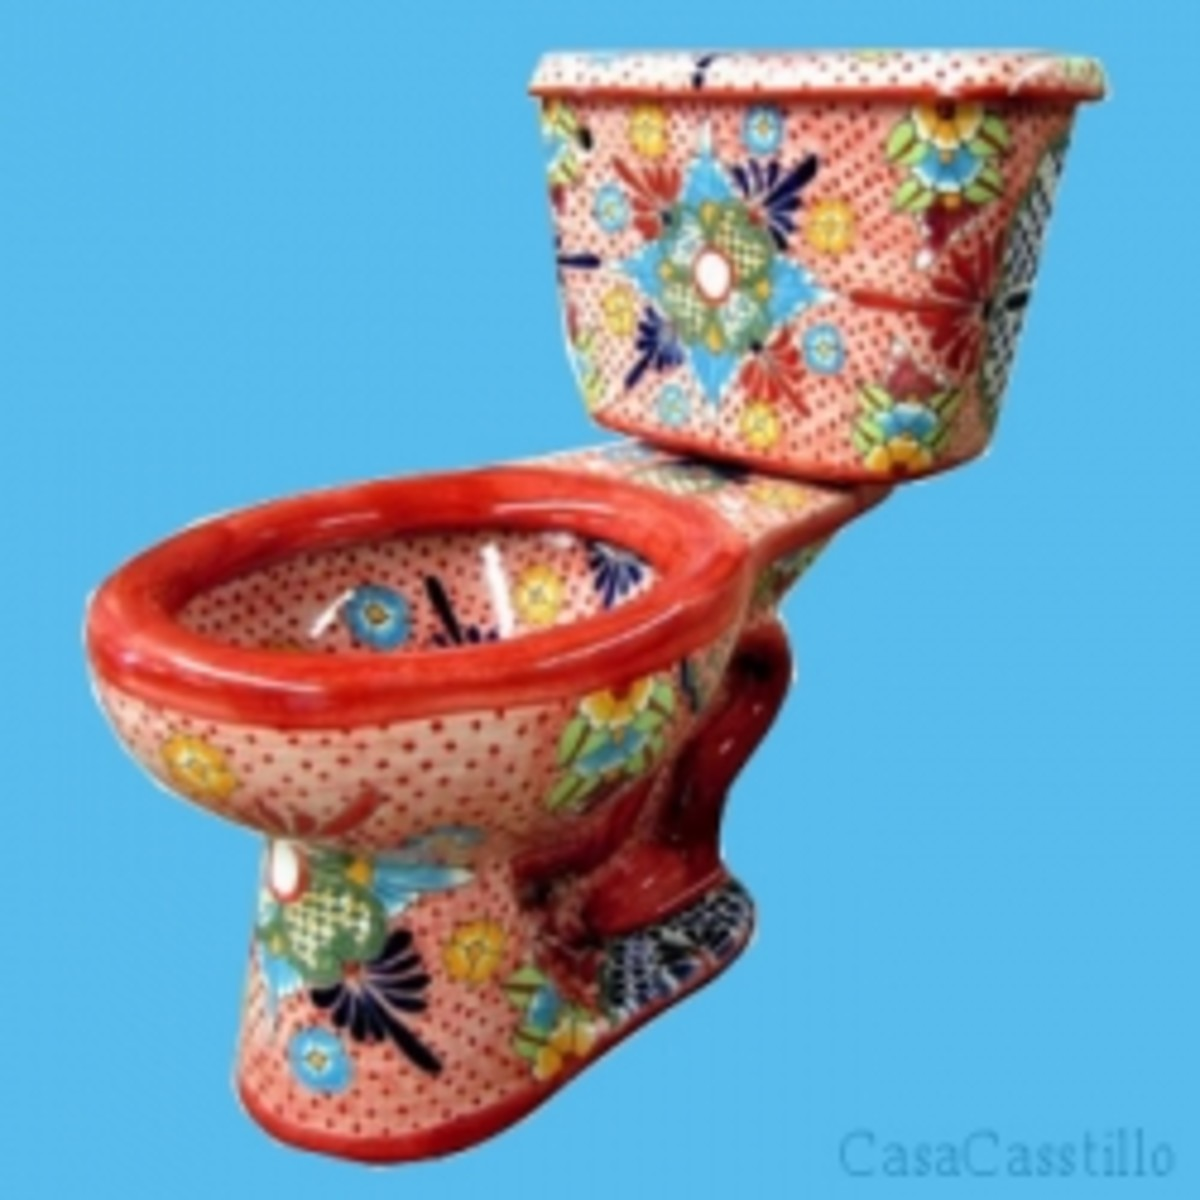 Amazing Mexican Talavera Toilets in Stunning Vibrant Colors